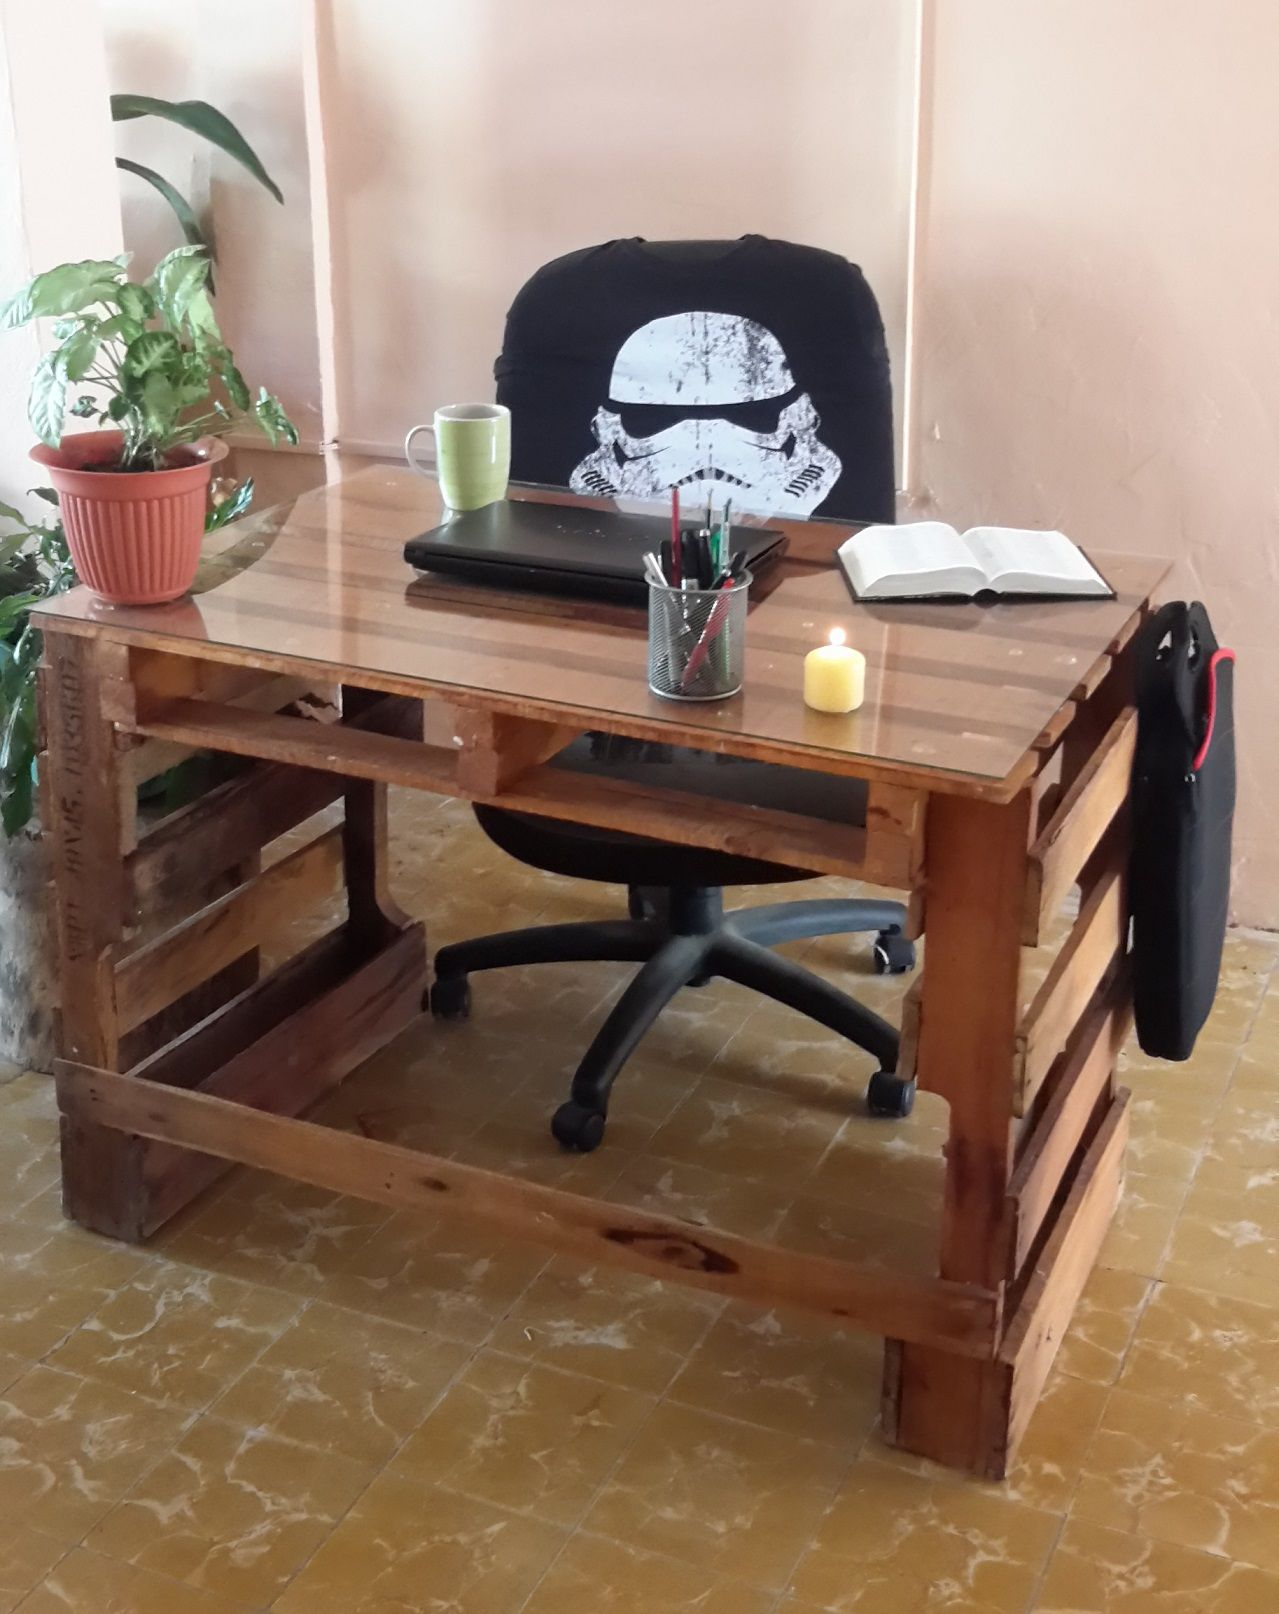 pallet desk escritorio de pallets made by me casa pinterest selber machen europalette. Black Bedroom Furniture Sets. Home Design Ideas